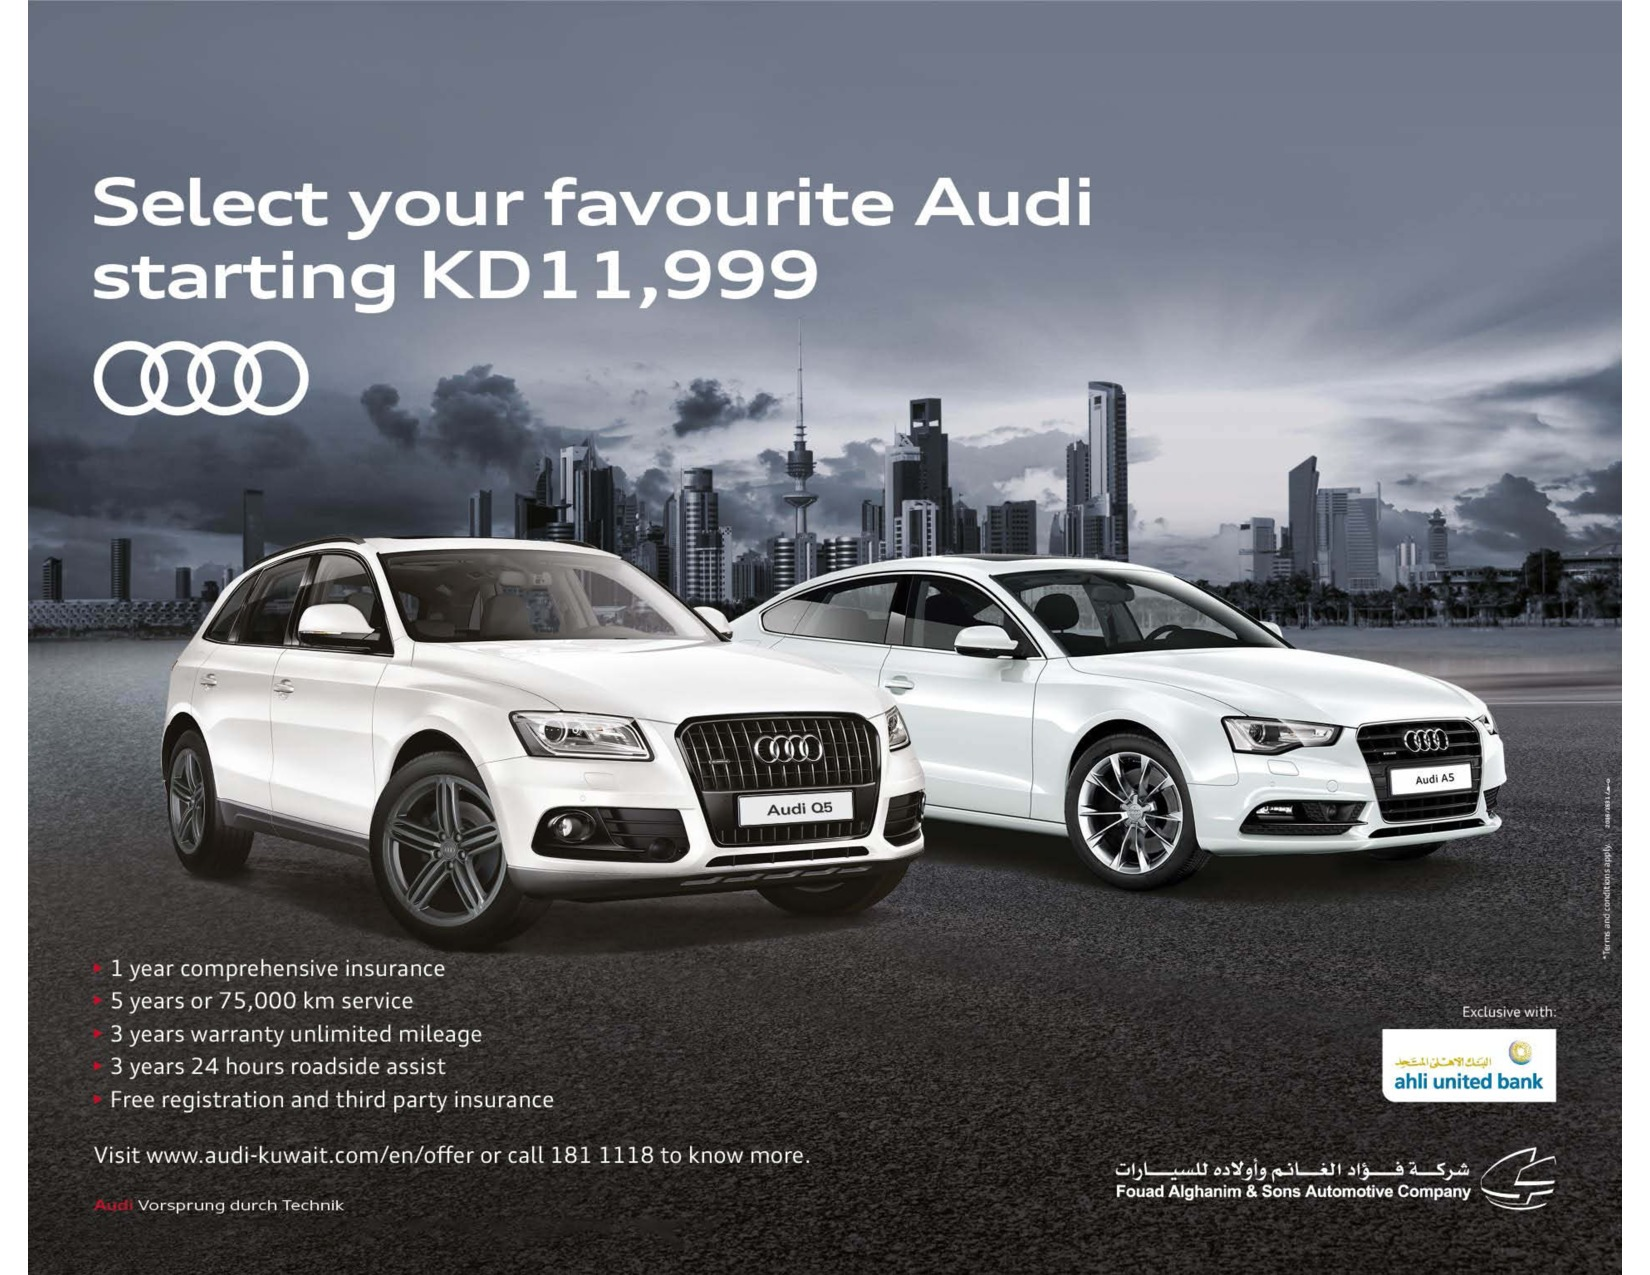 select-your-favourite-audi-kuwait